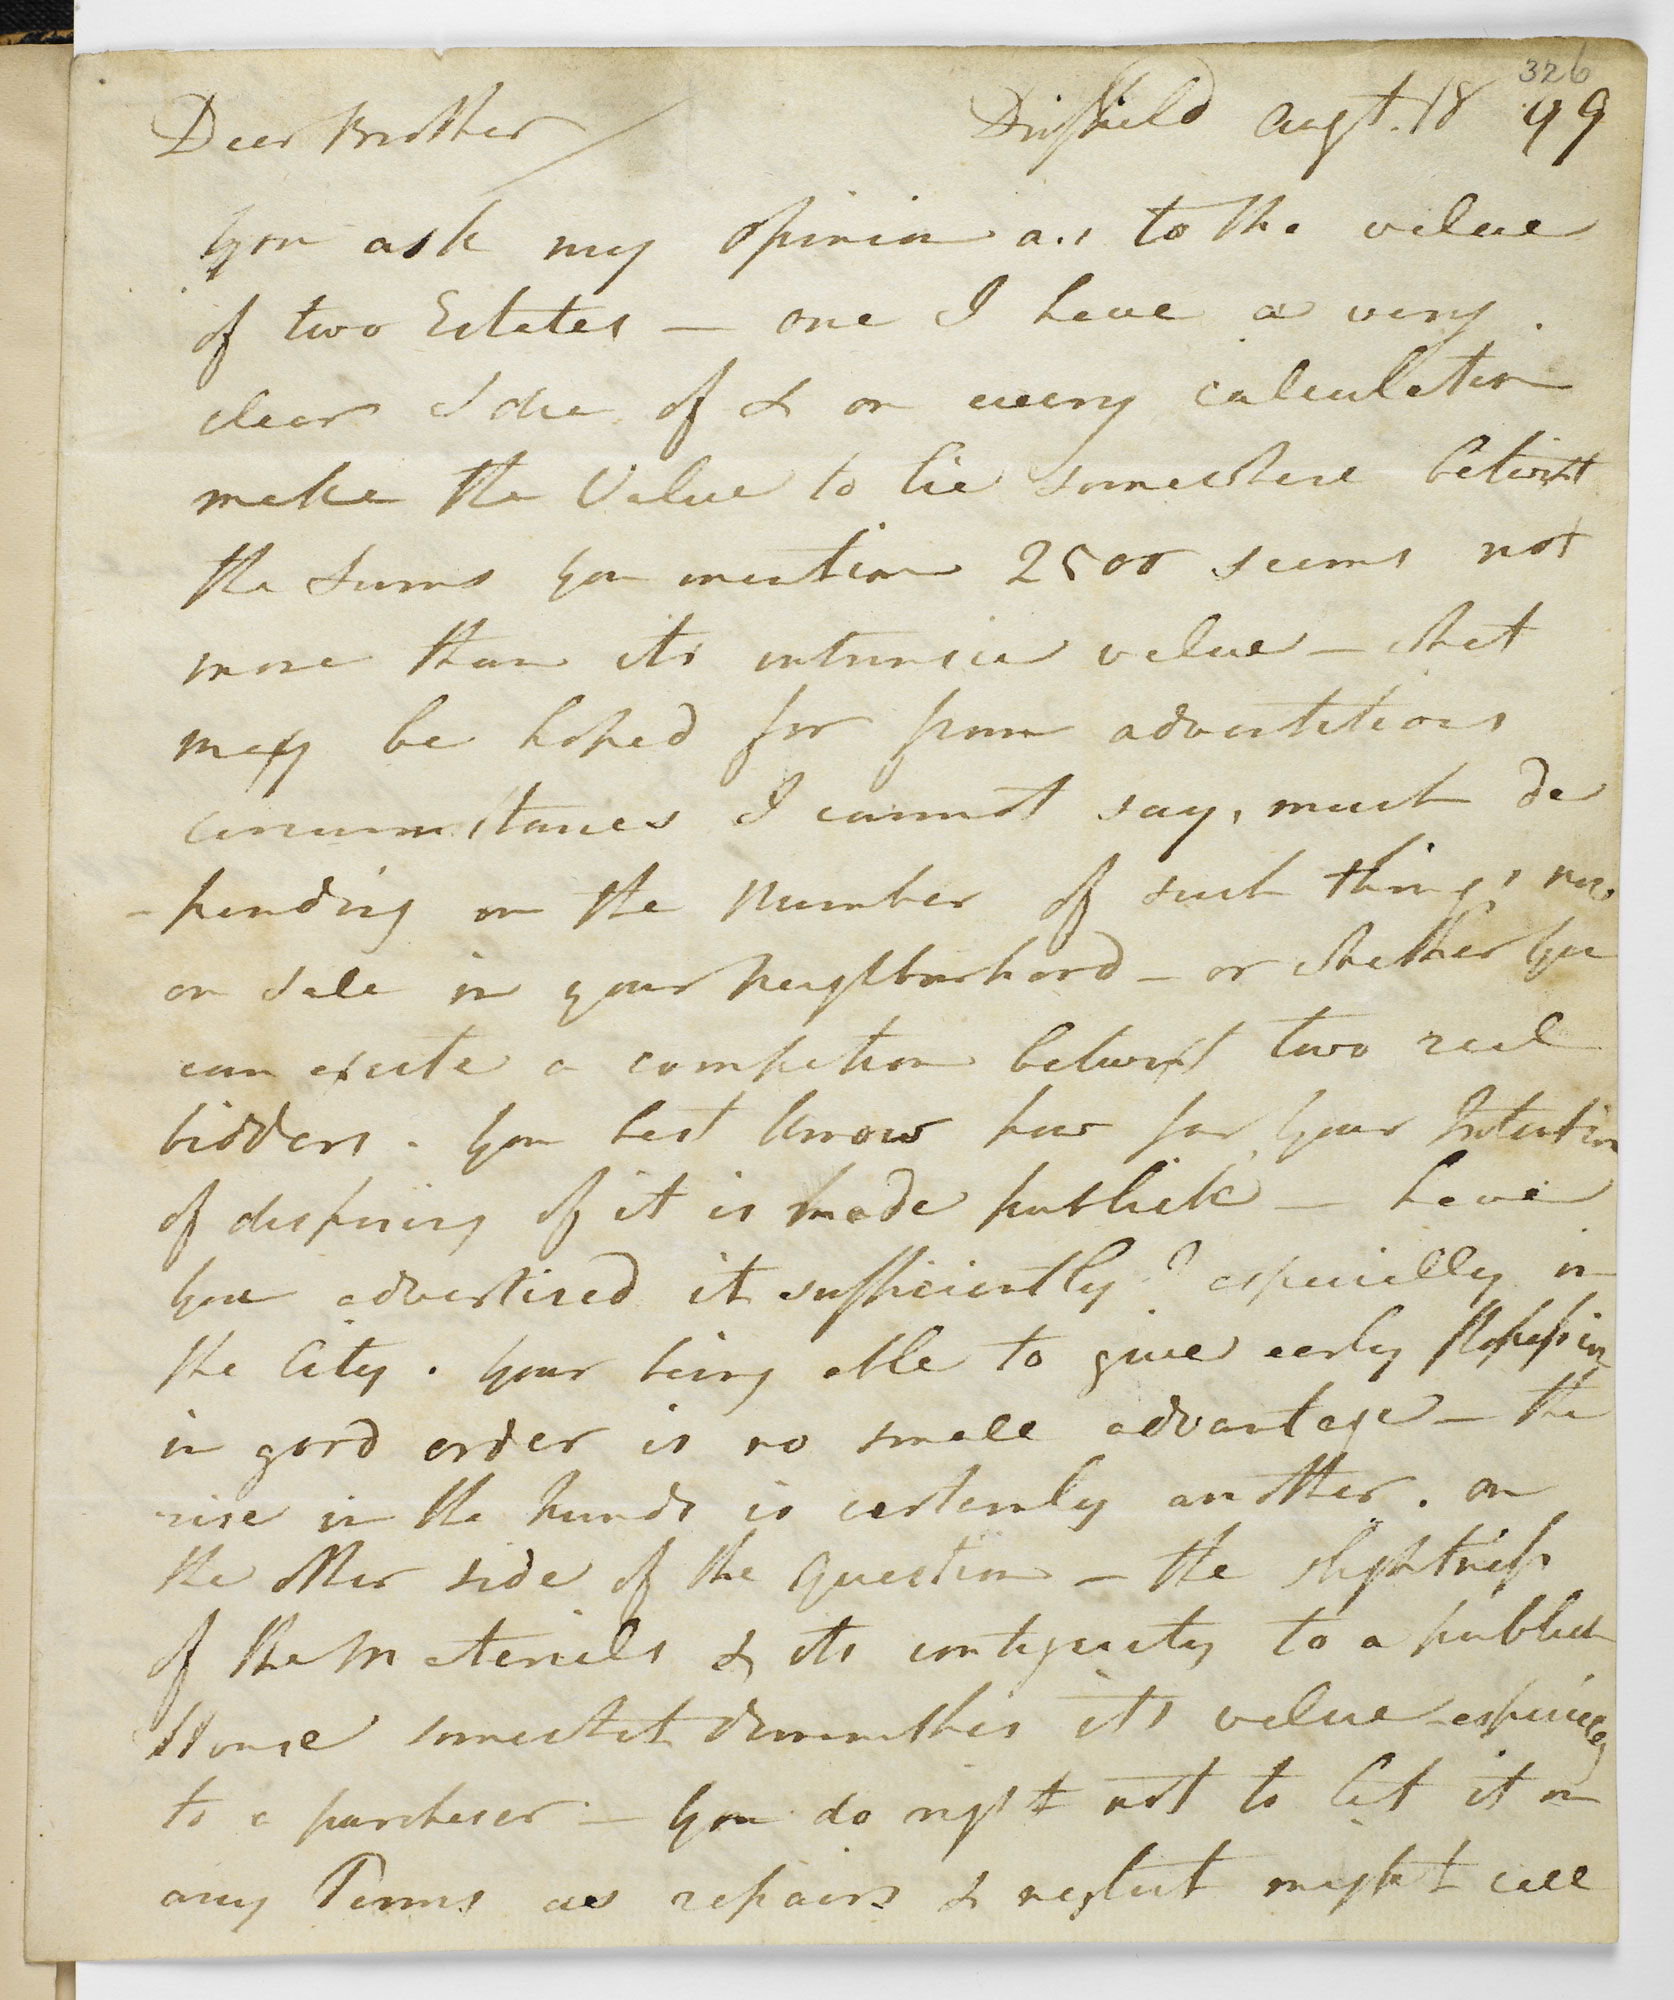 Letter from William Blake to Dr Trusler, 18 August 1799 [folio: 326r]